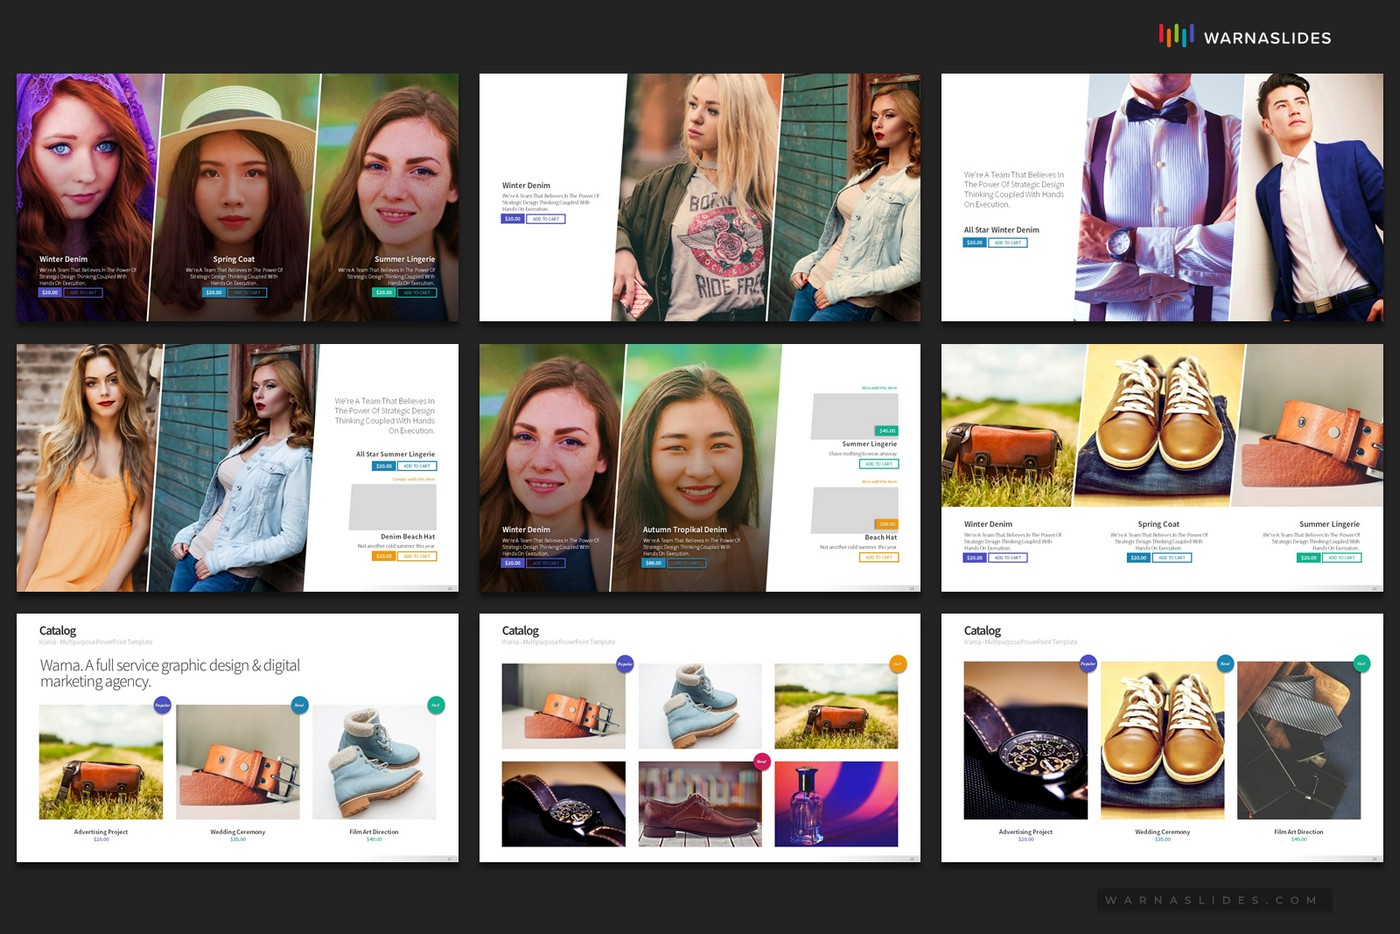 Product-Catalog-eCommmerce-PowerPoint-Template-for-Business-Pitch-Deck-Professional-Creative-PowerPoint-Icons-007